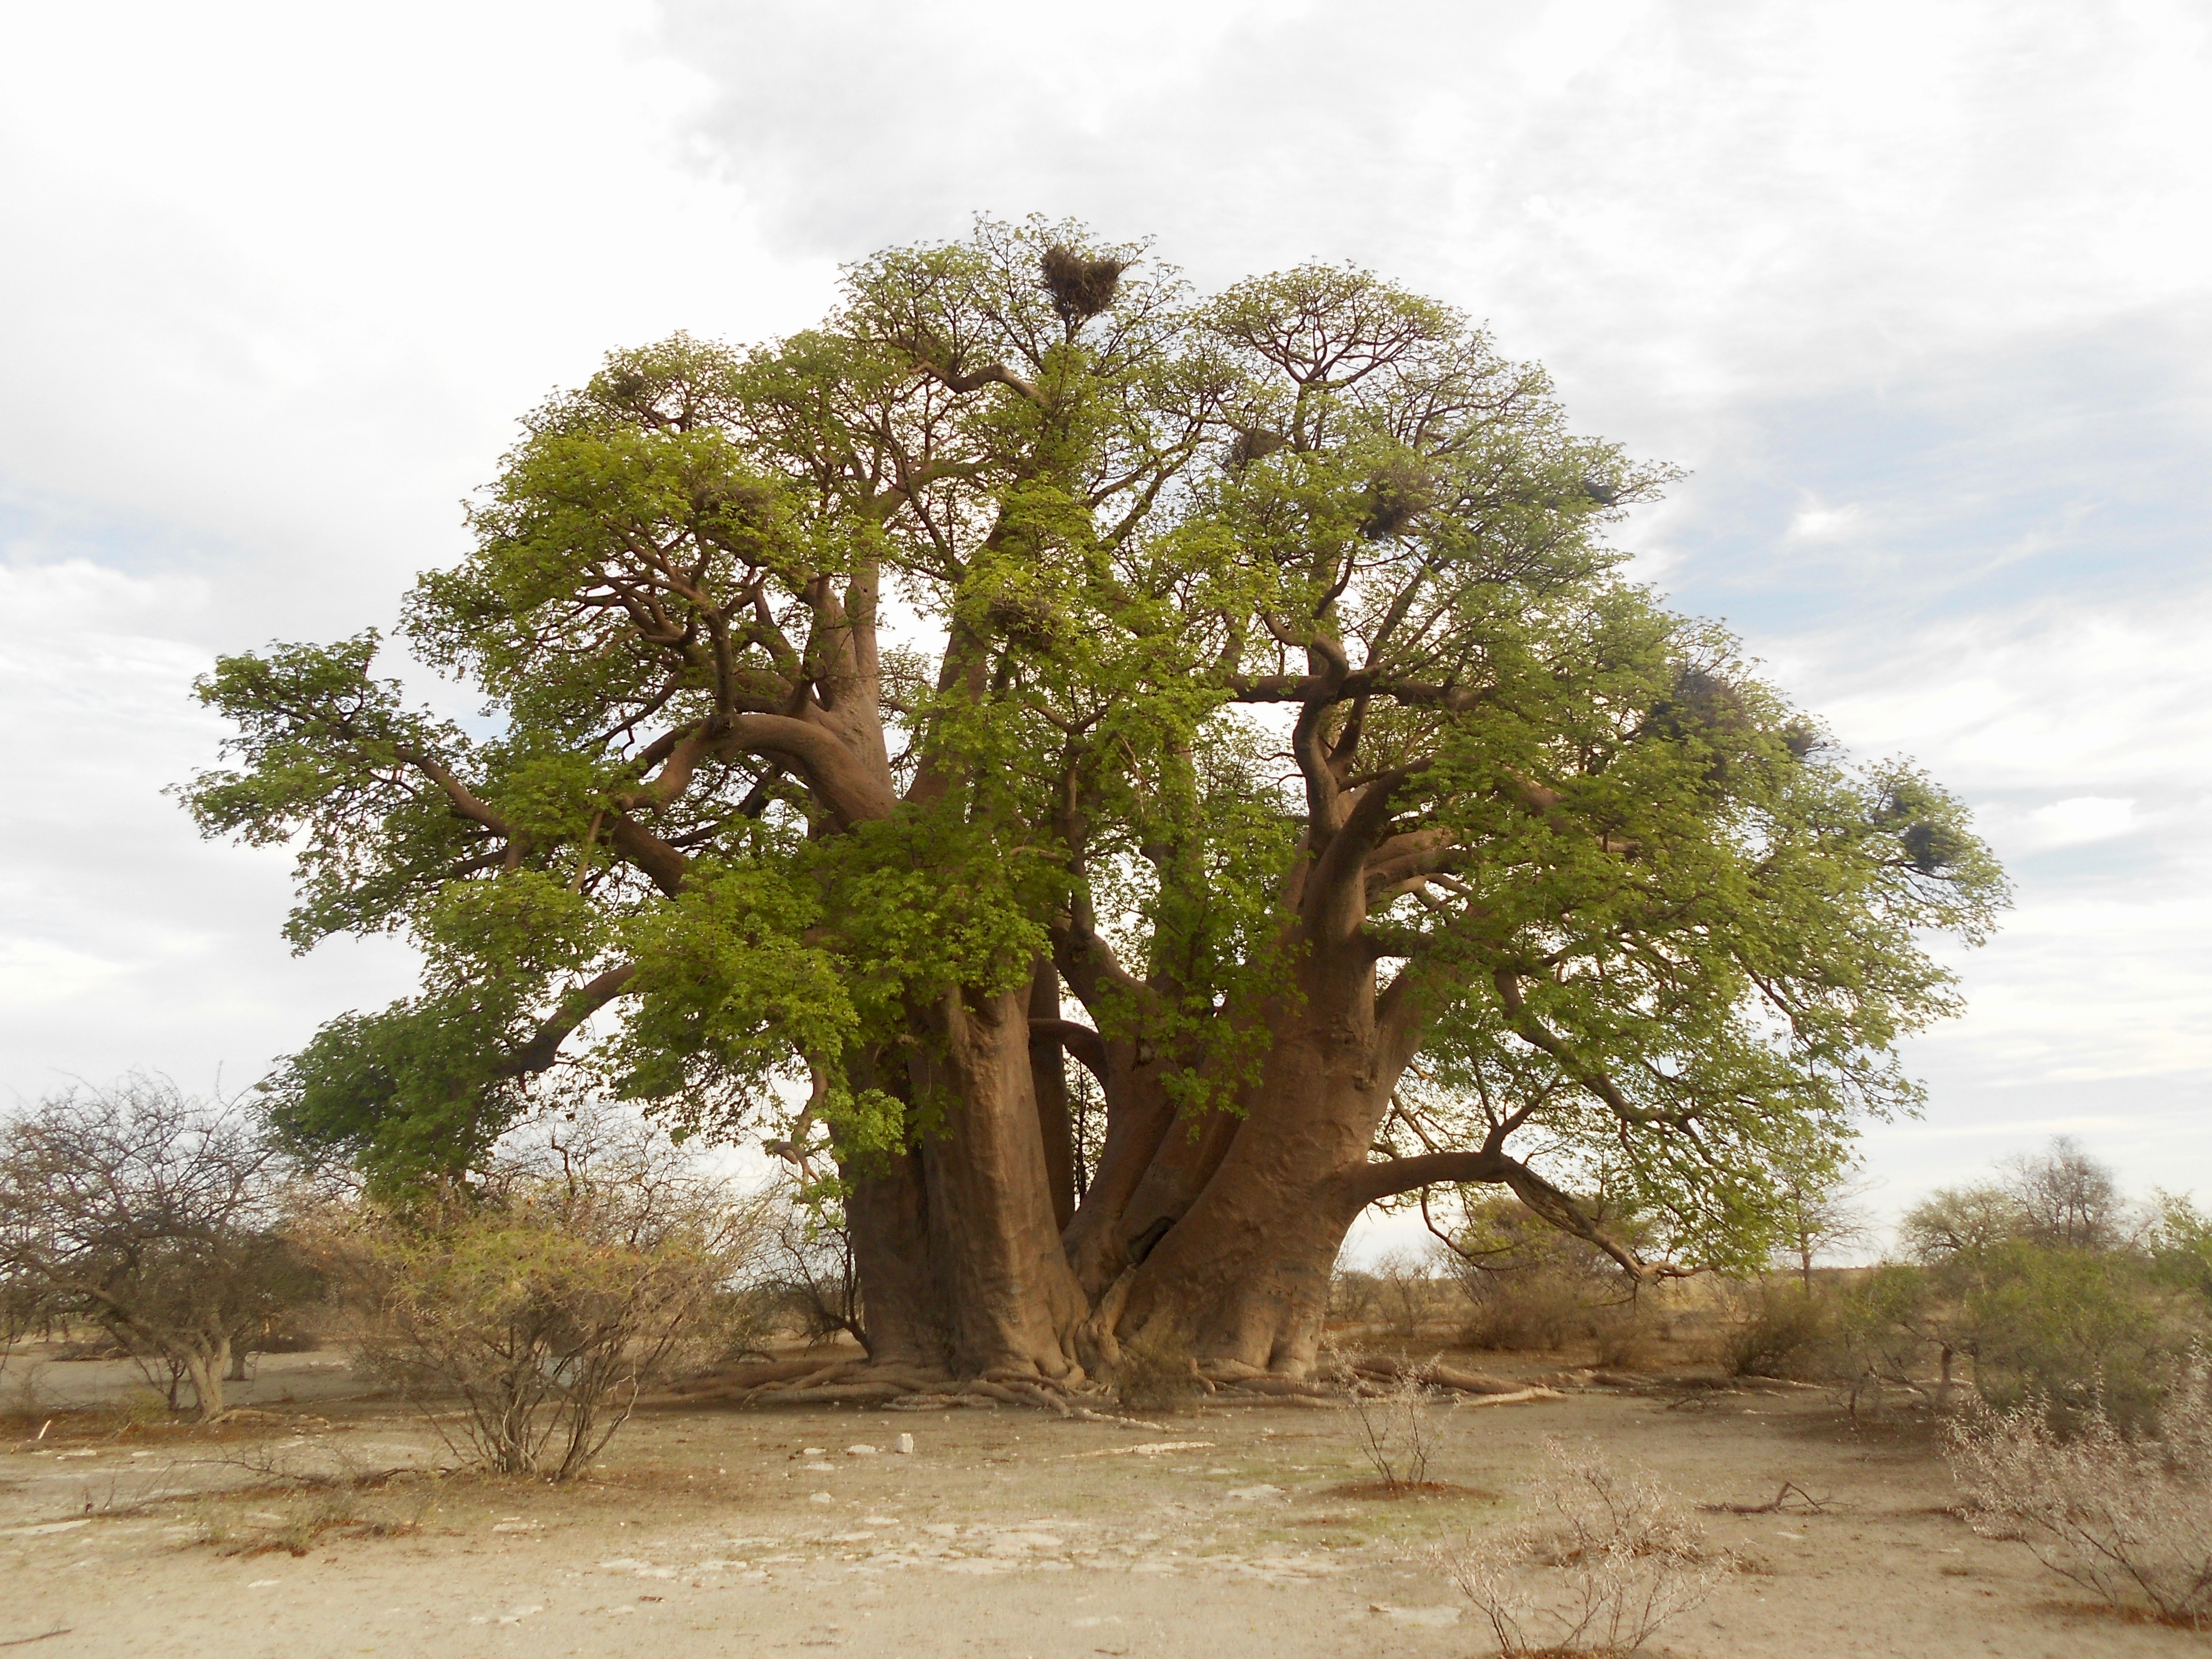 Chapman's baobab in the Kalahari Desert before it collapsed and died.